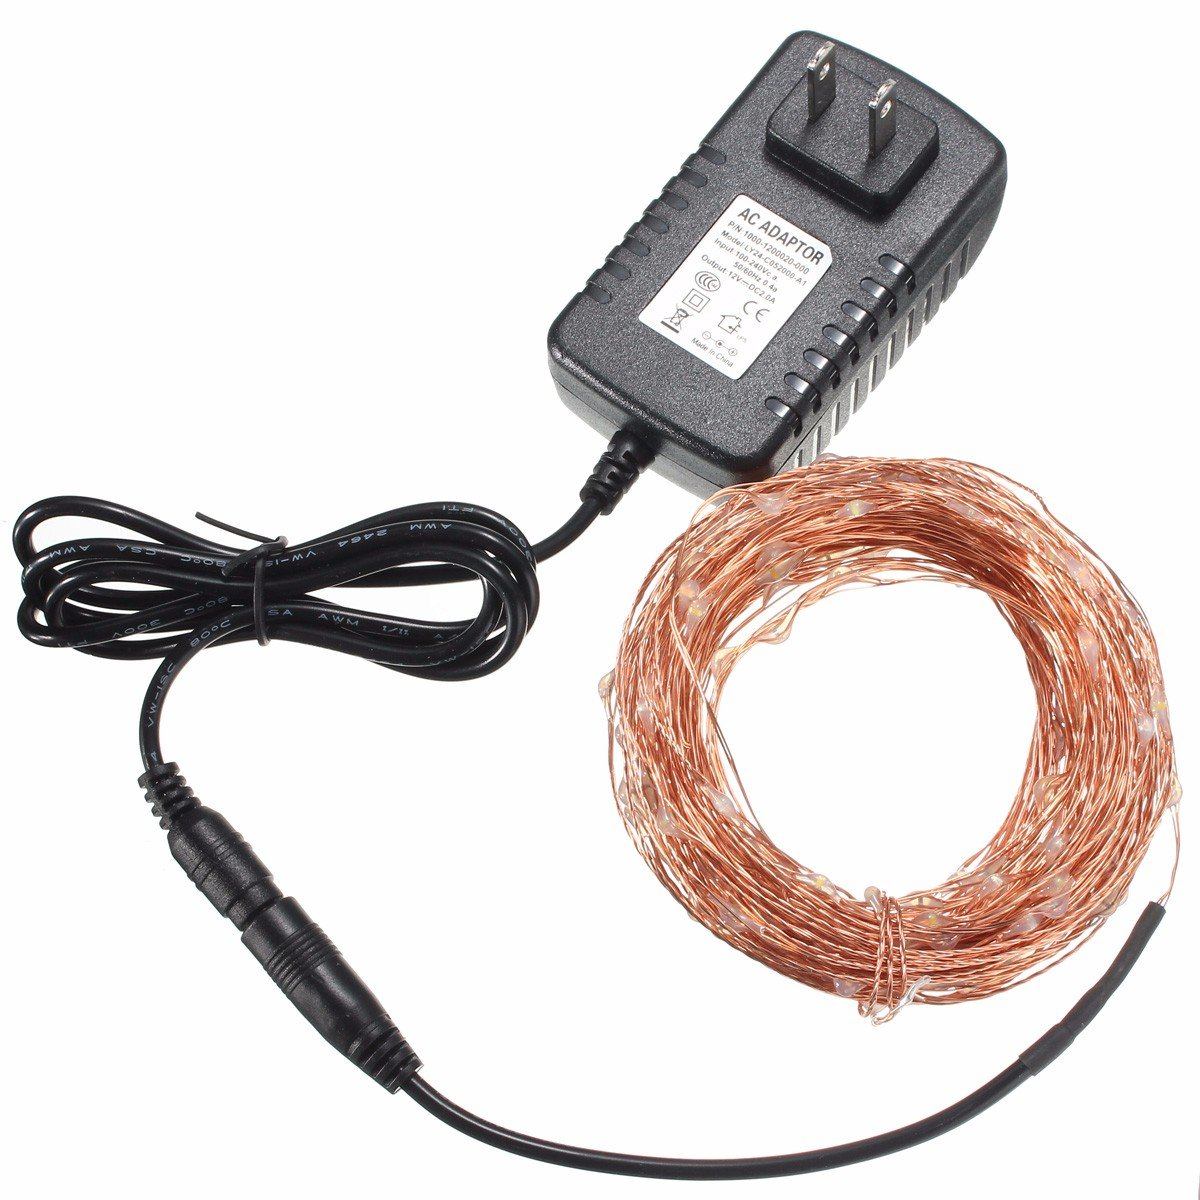 20M IP67 200 LED Copper Wire Fairy String Light for Christmas Party Decor with 12V 2A Adapter